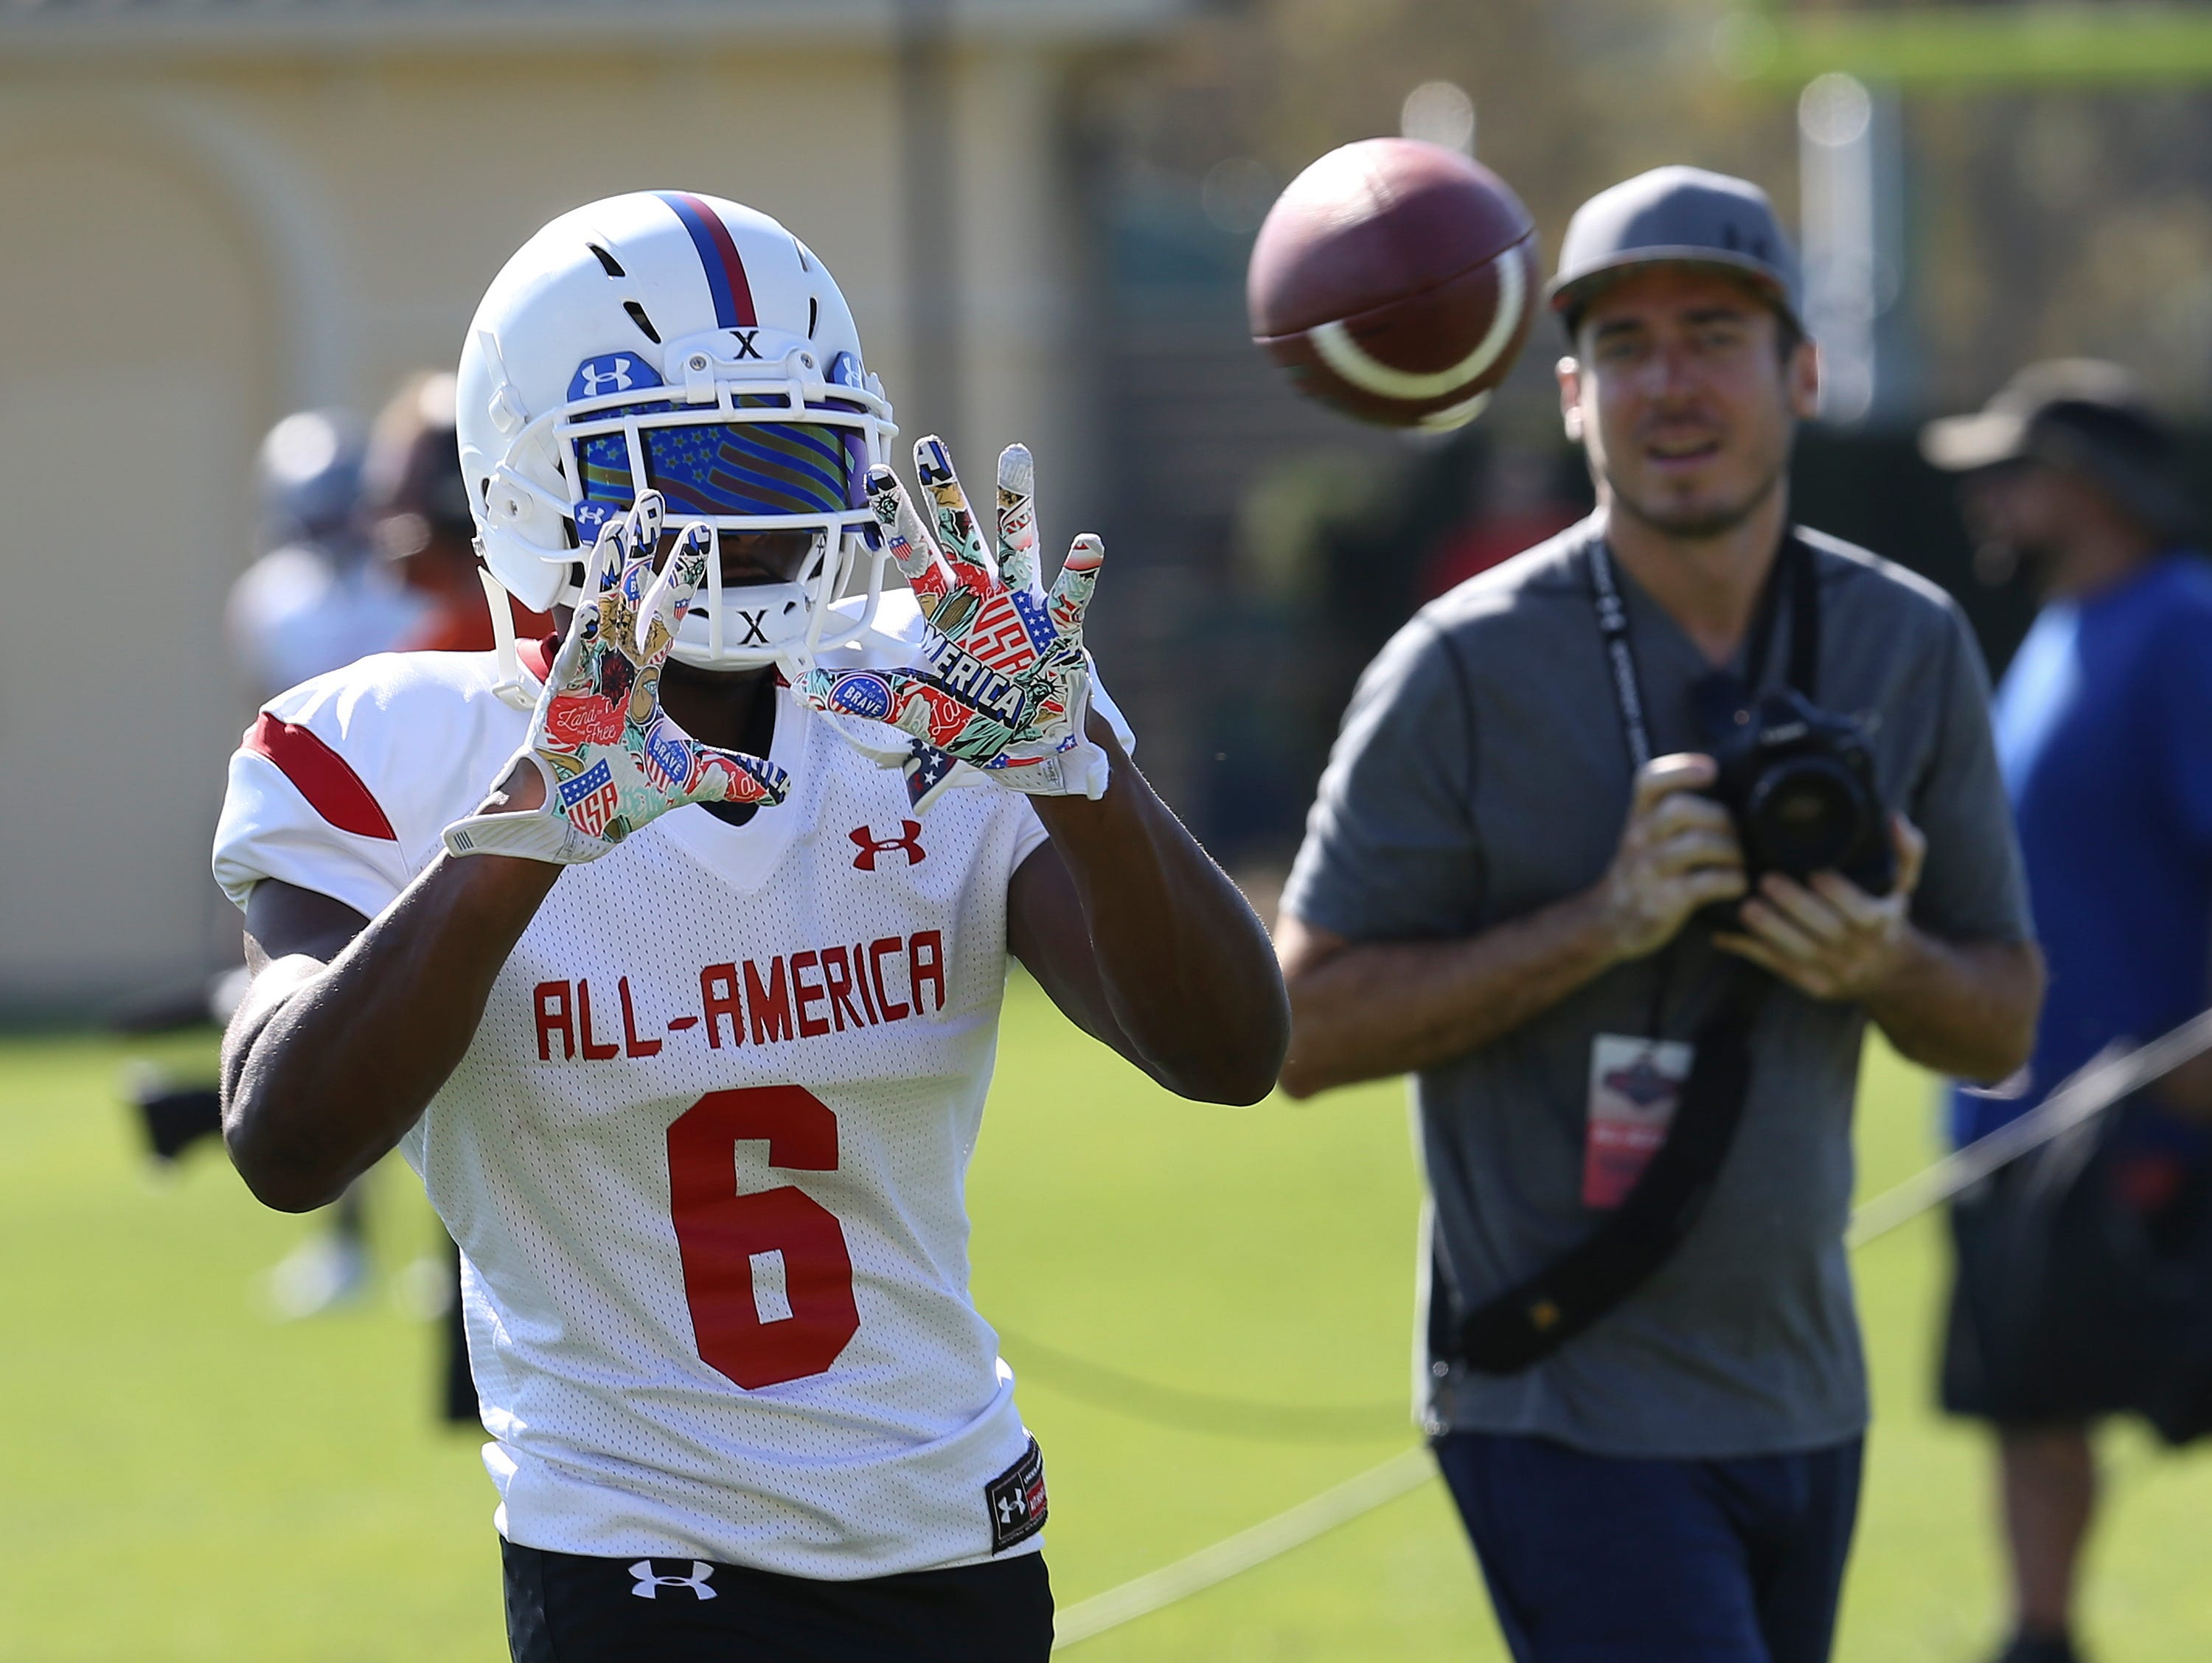 U of L recruit Russ Yeast (6) catches a pass for Team Highlight during practice for the upcoming Under Armour All-American Game in Orlando, Fla. Dec. 29, 2016